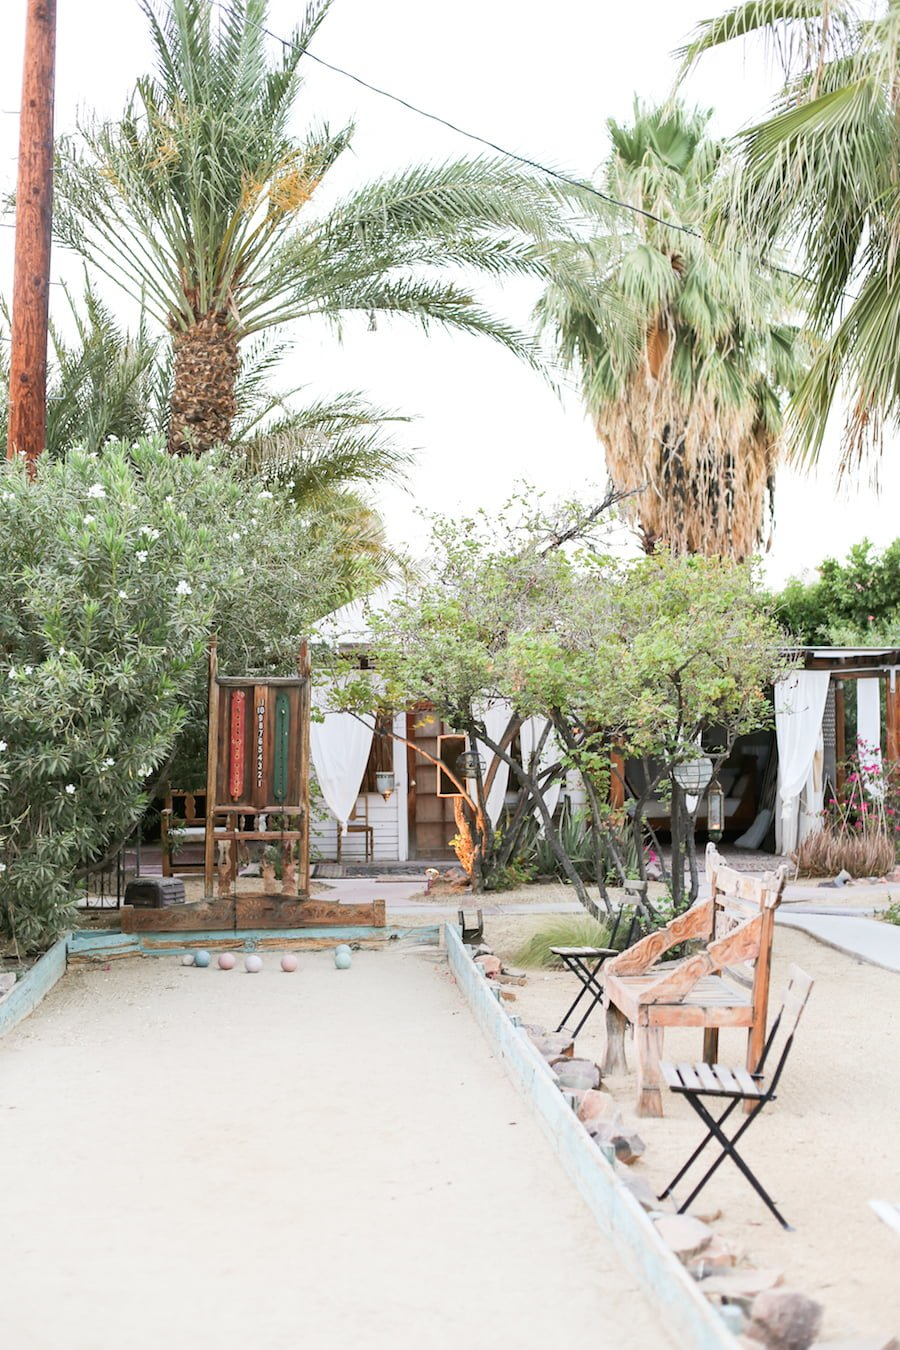 Korakia Pensione in Palm Springs | Salty Canary